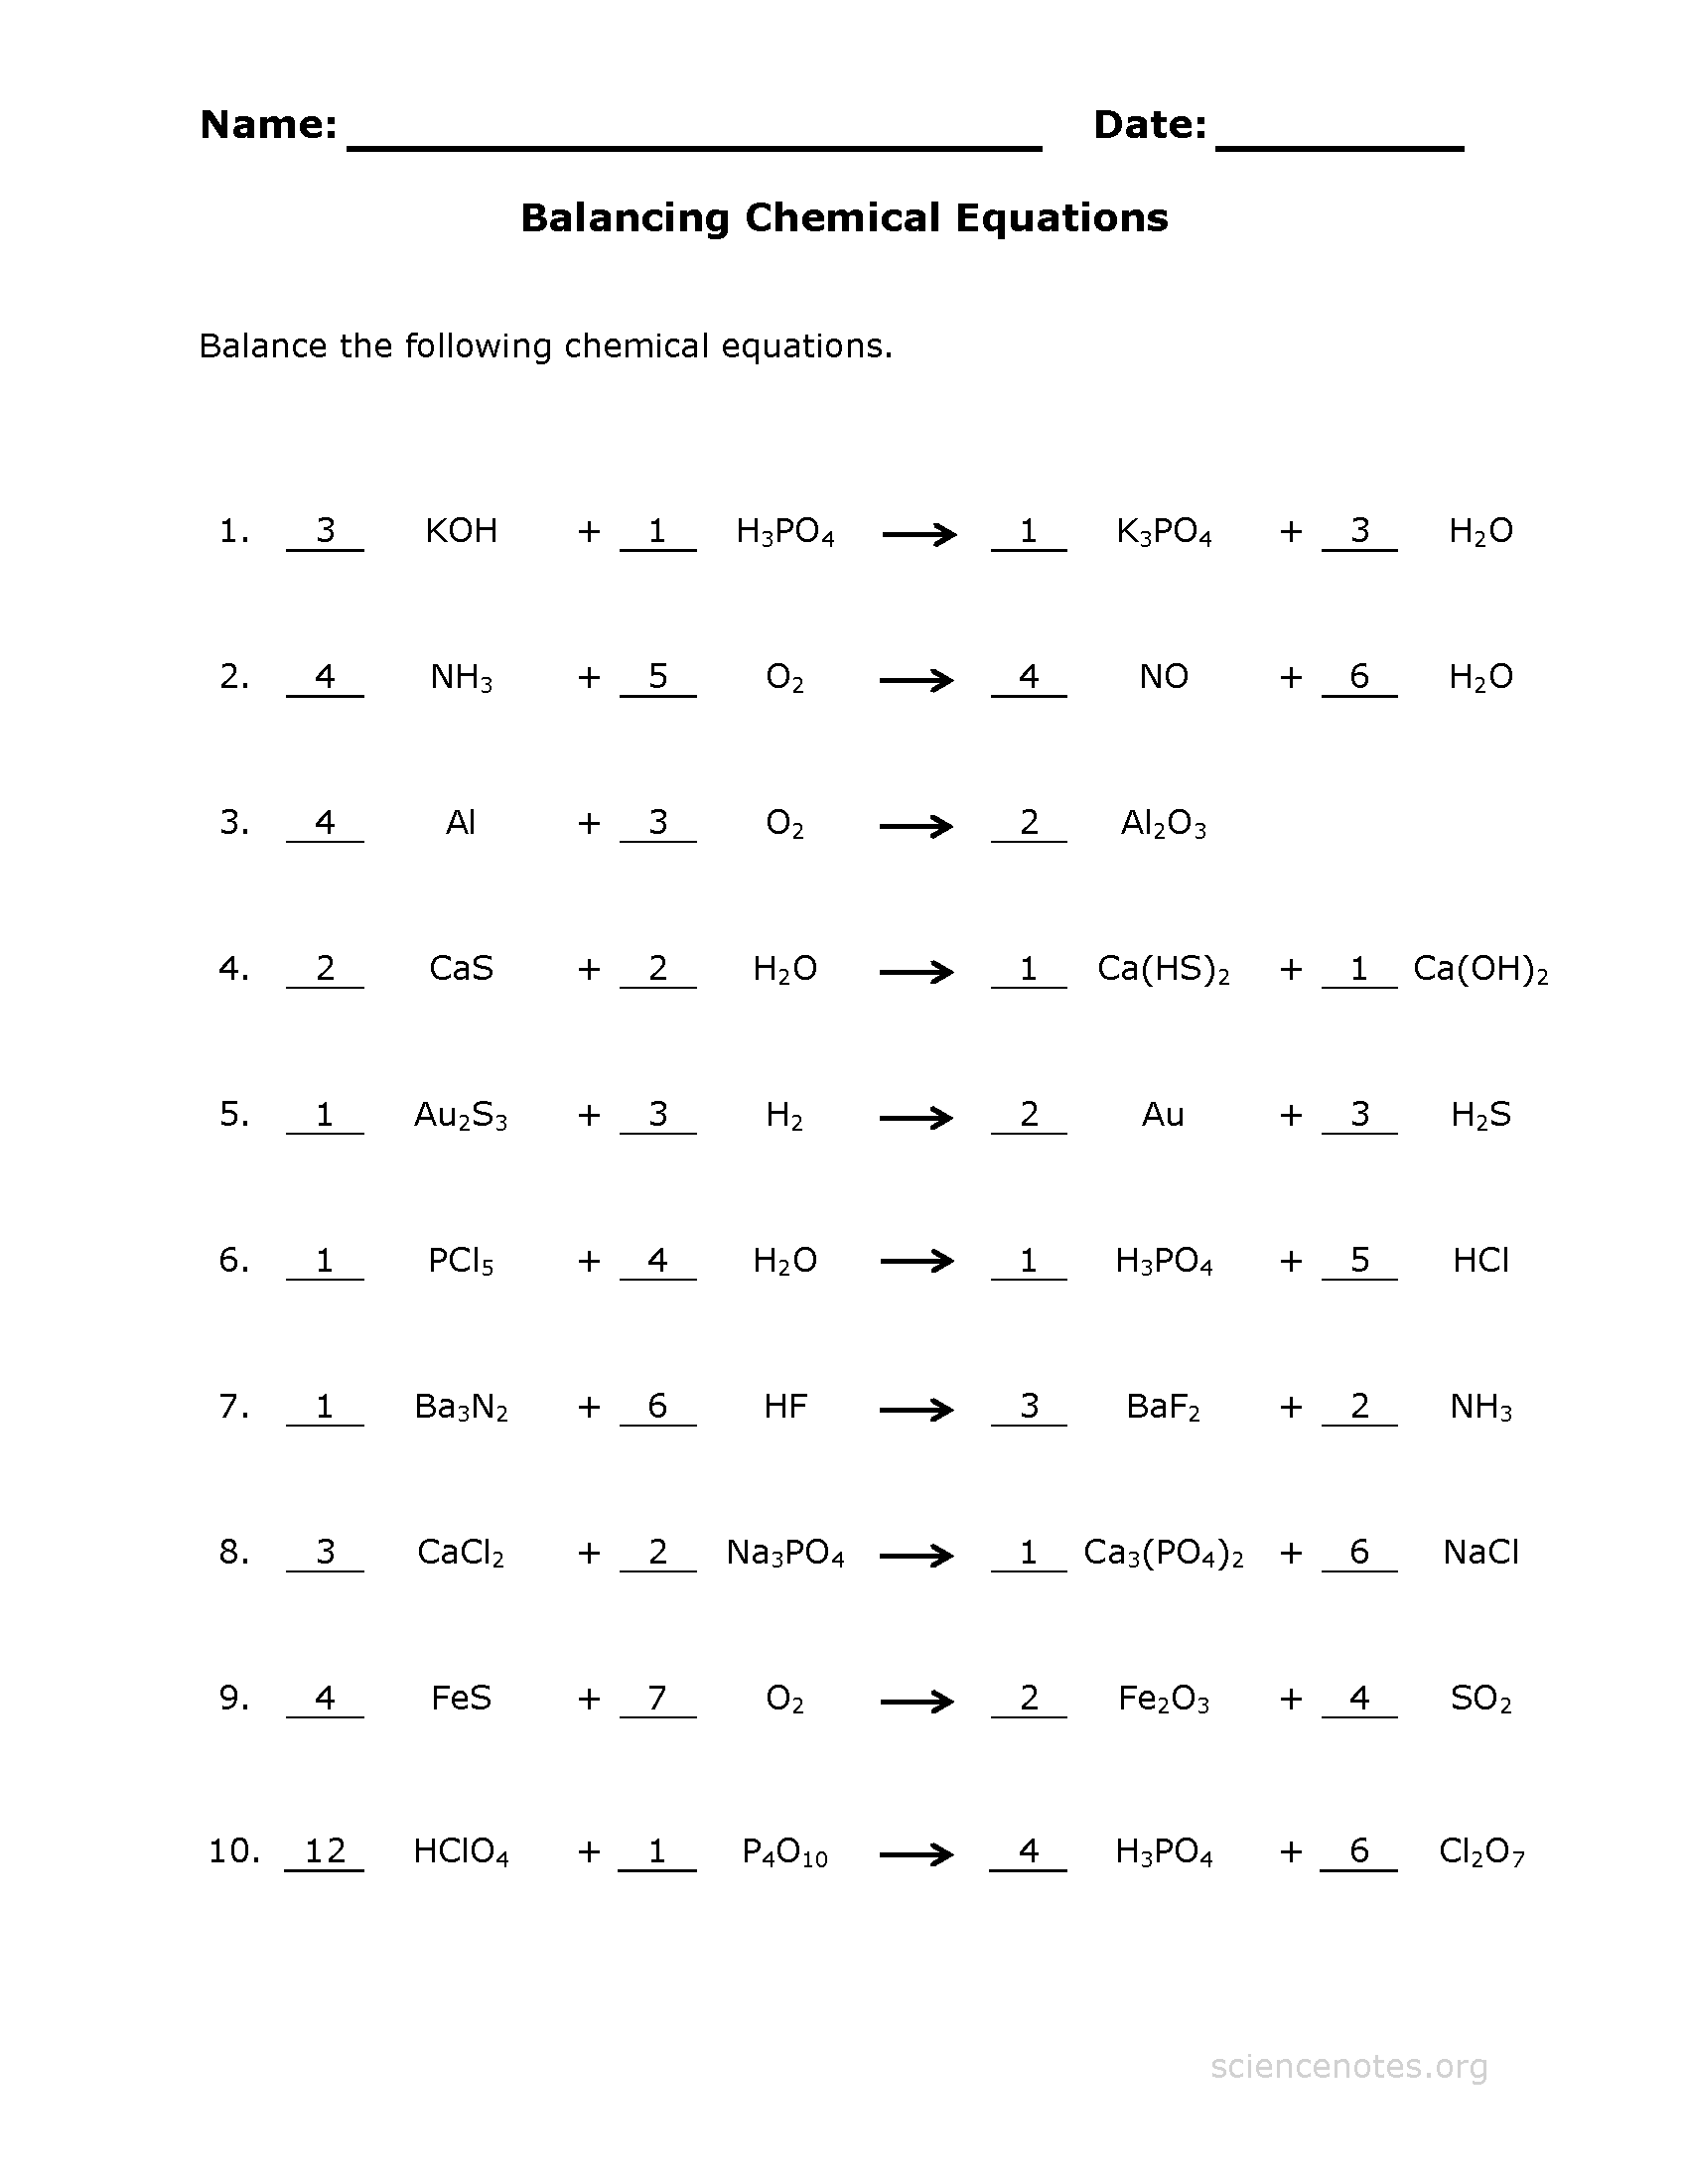 Worksheets Balancing Chemical Equations Worksheet With Answers how to balance equations printable worksheets balancing equation practice sheet answer